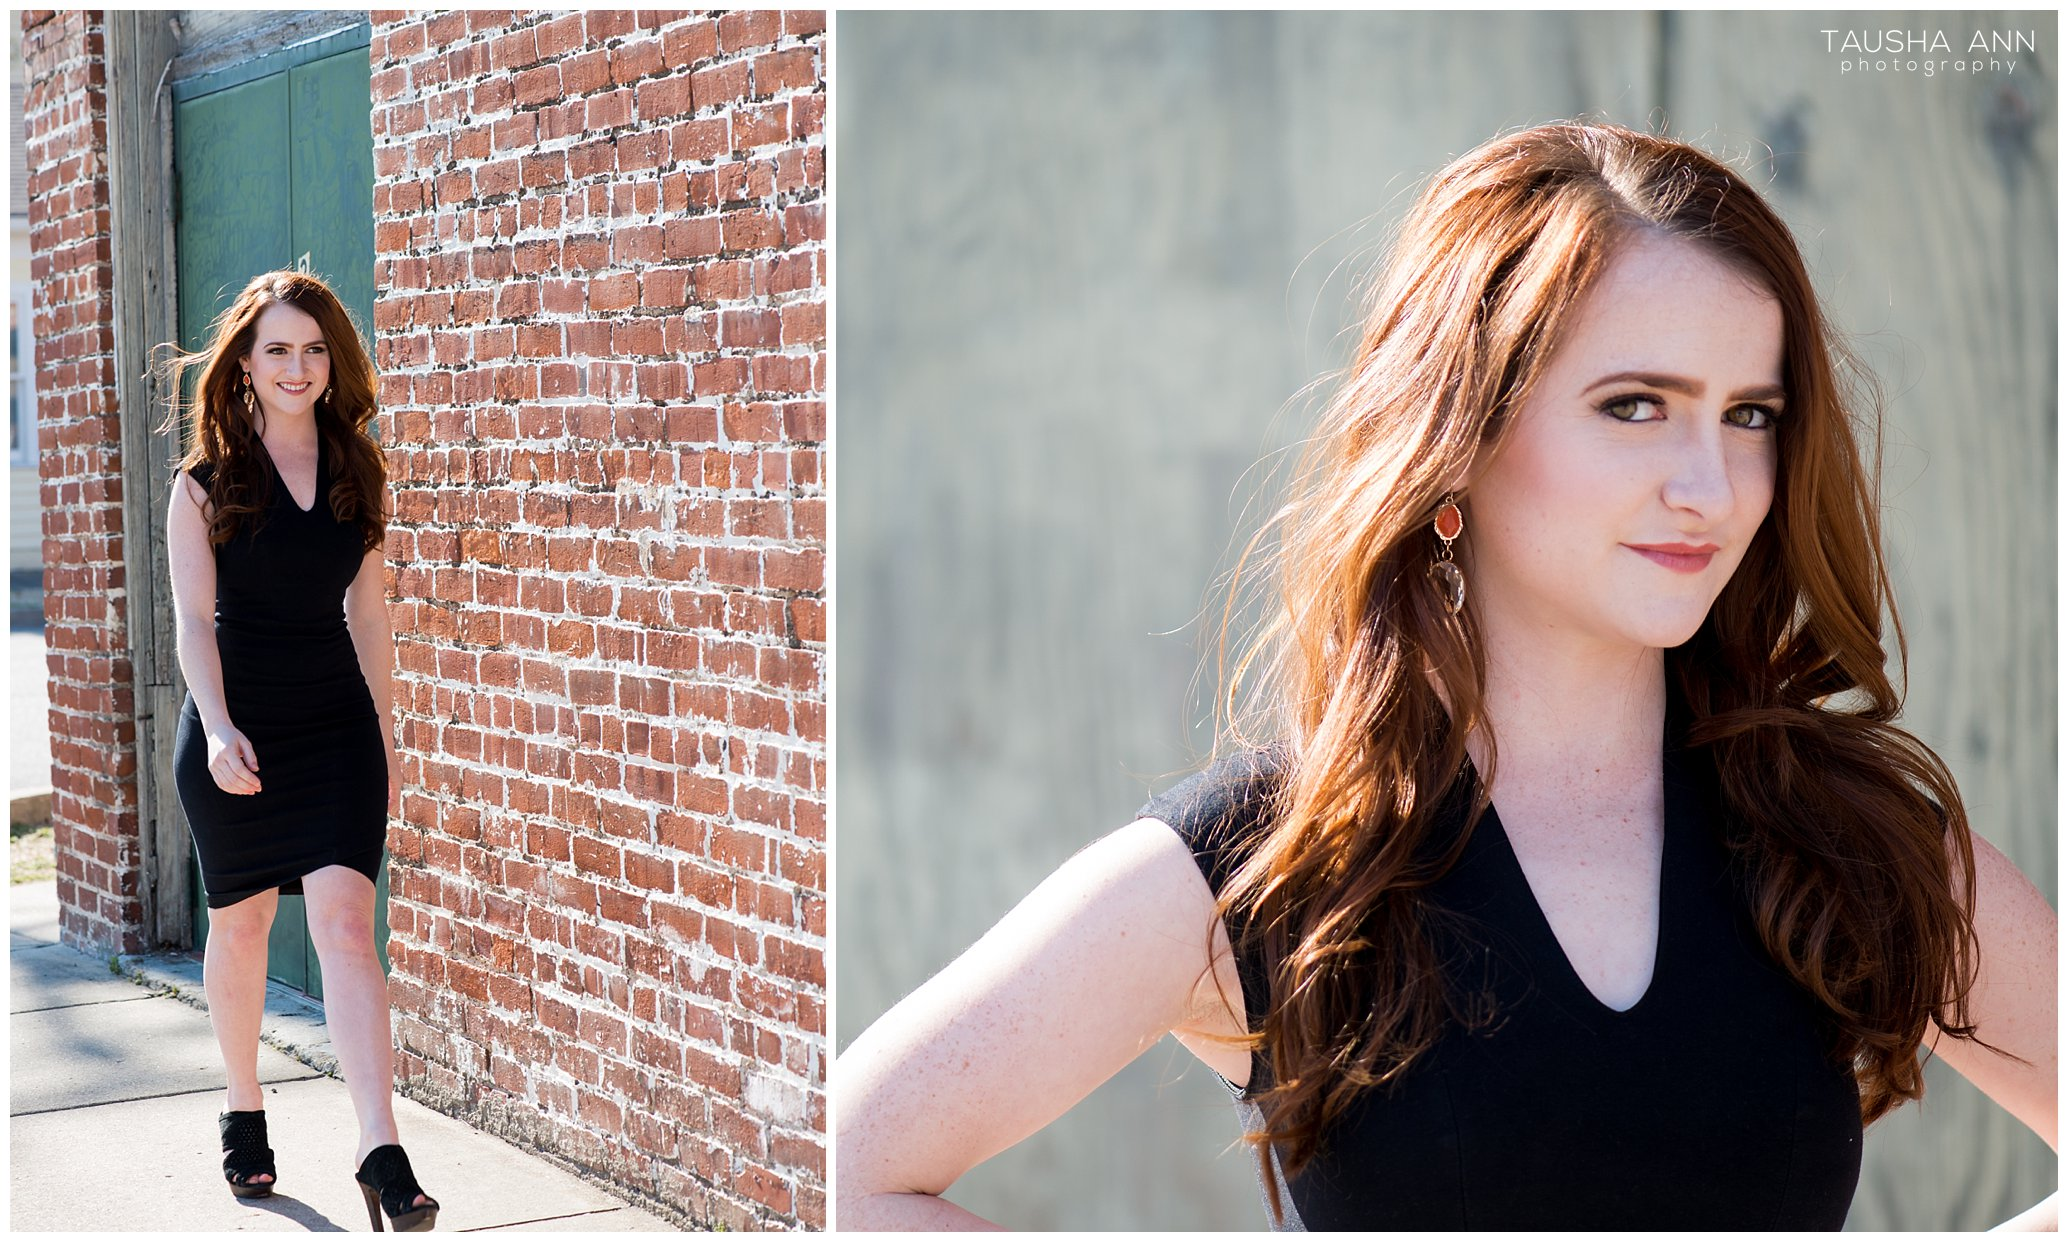 Shannon_Grace_Nashville_TN_FRanklin_Model_Photography_Headshots_CD_Cover.jpg